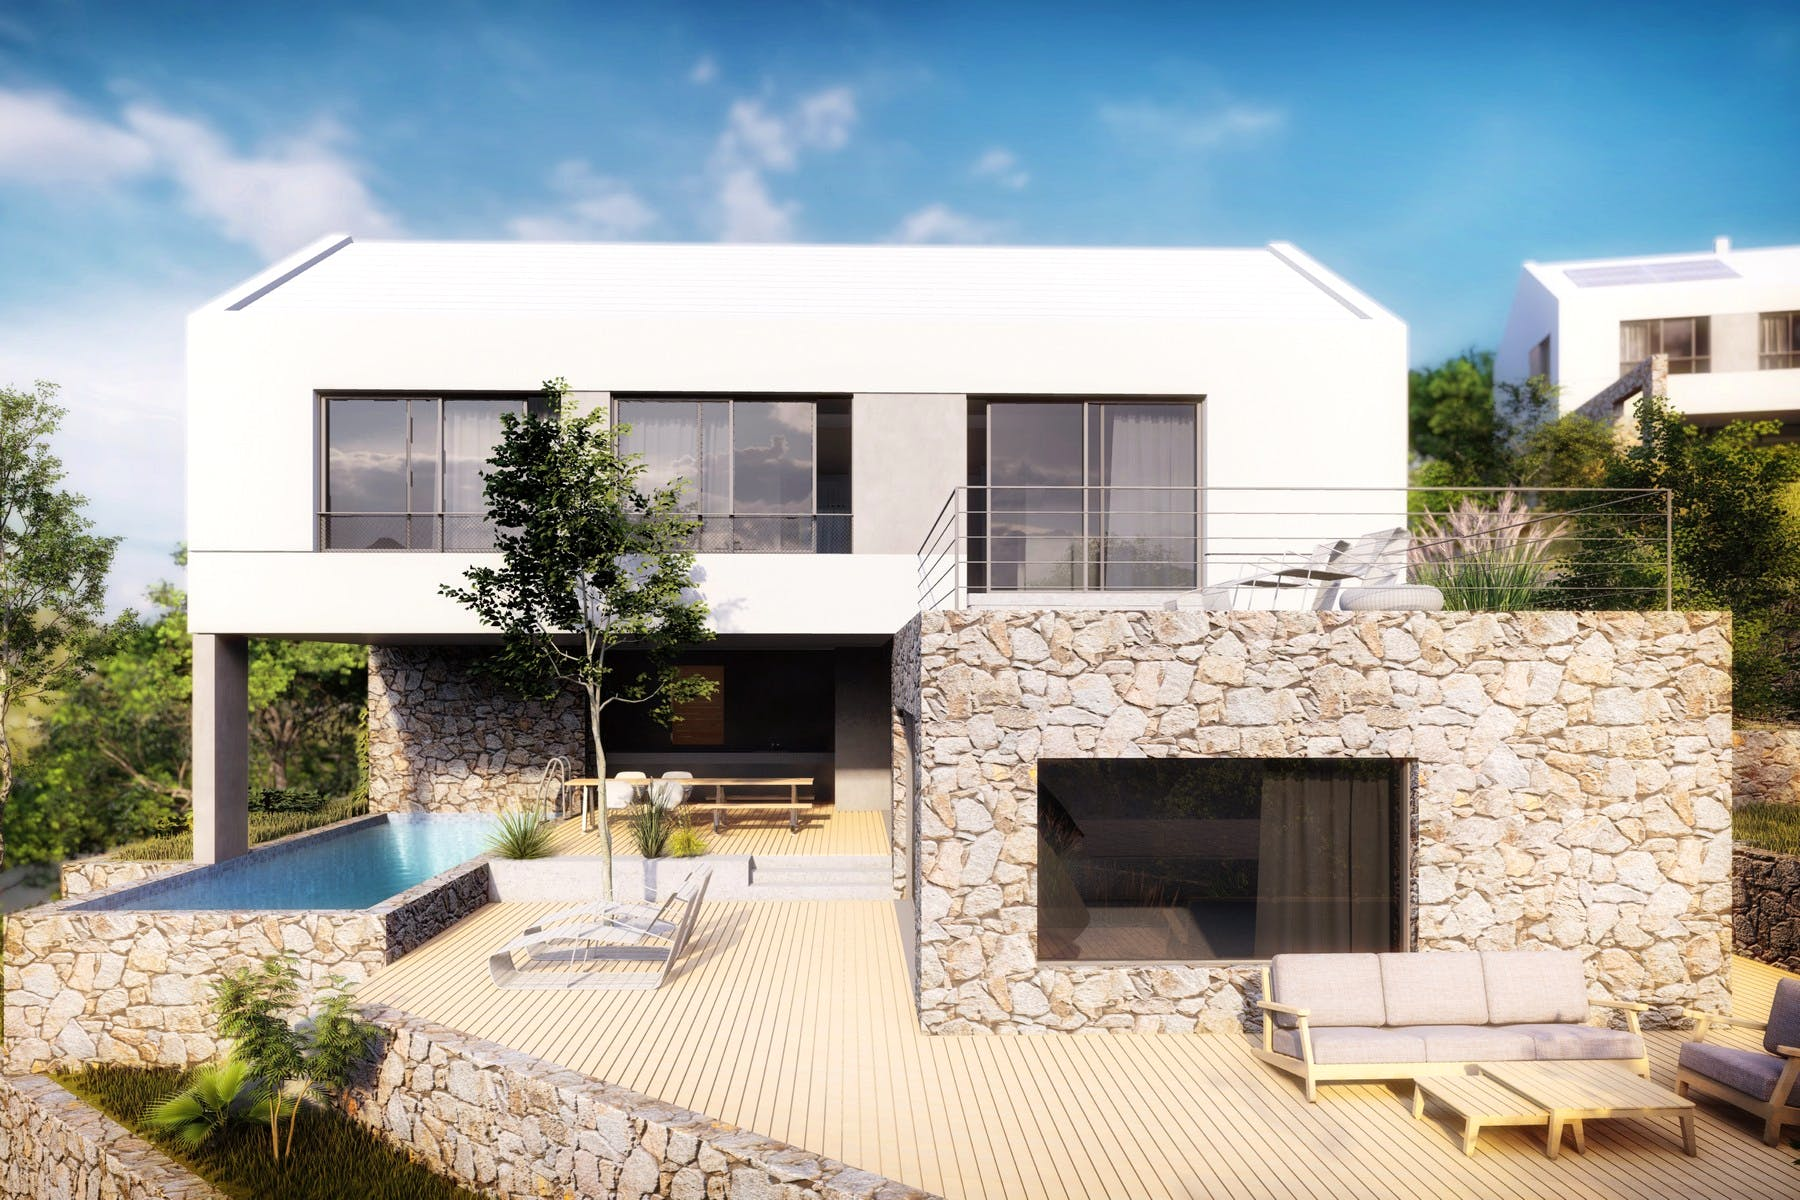 Project of a luxury villa with modern interior